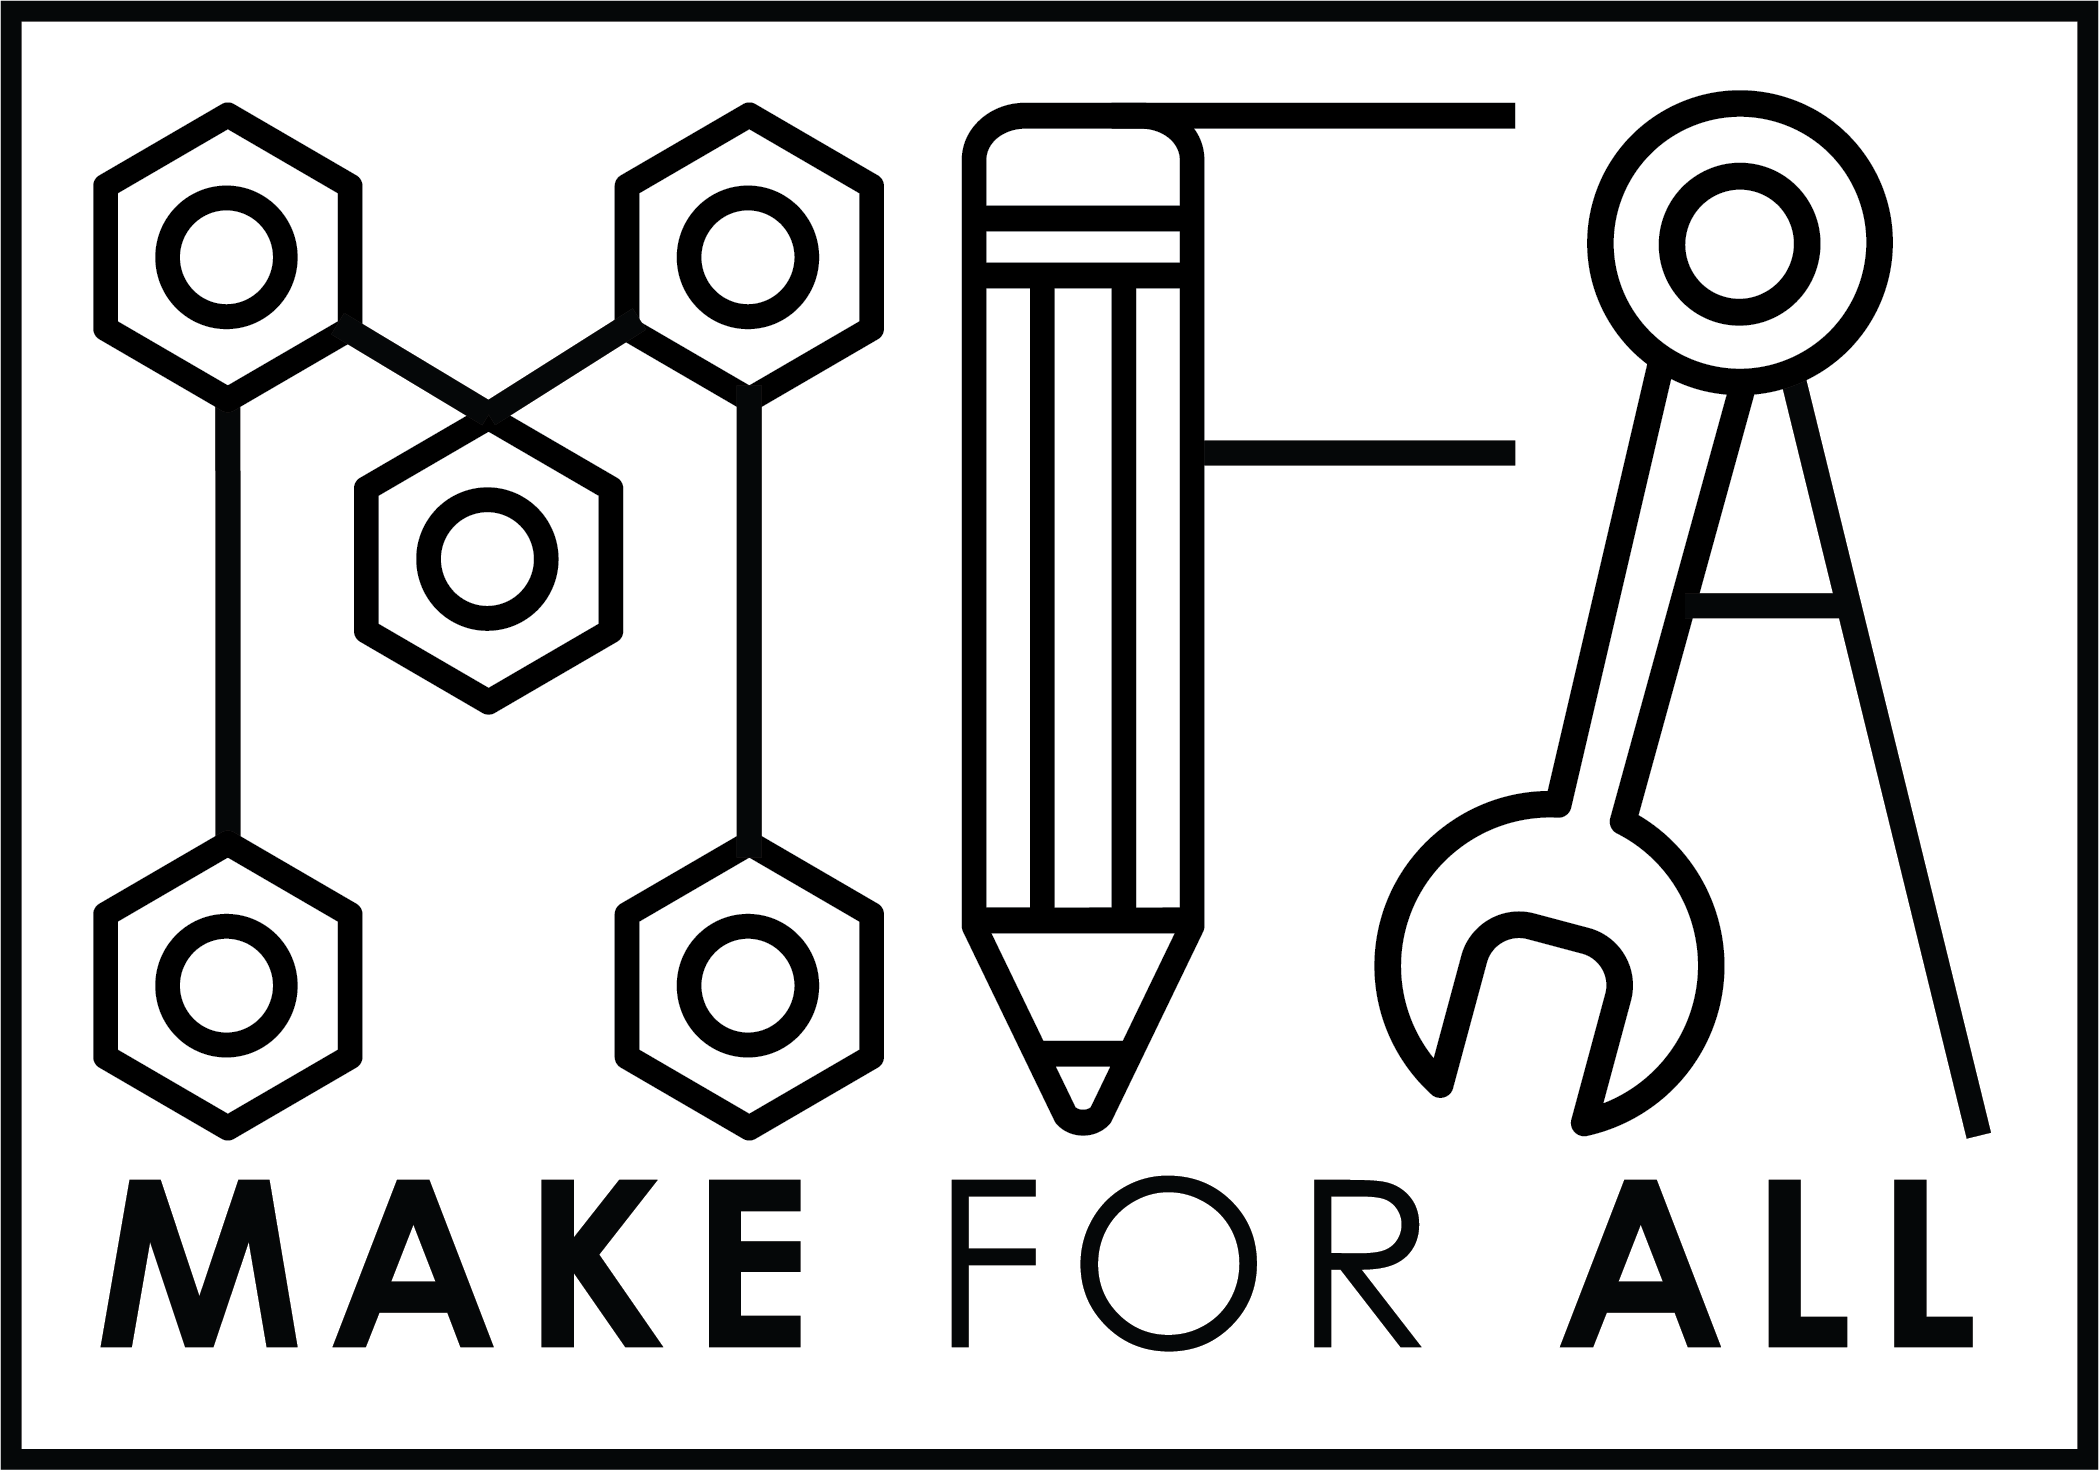 makeforall-white.png